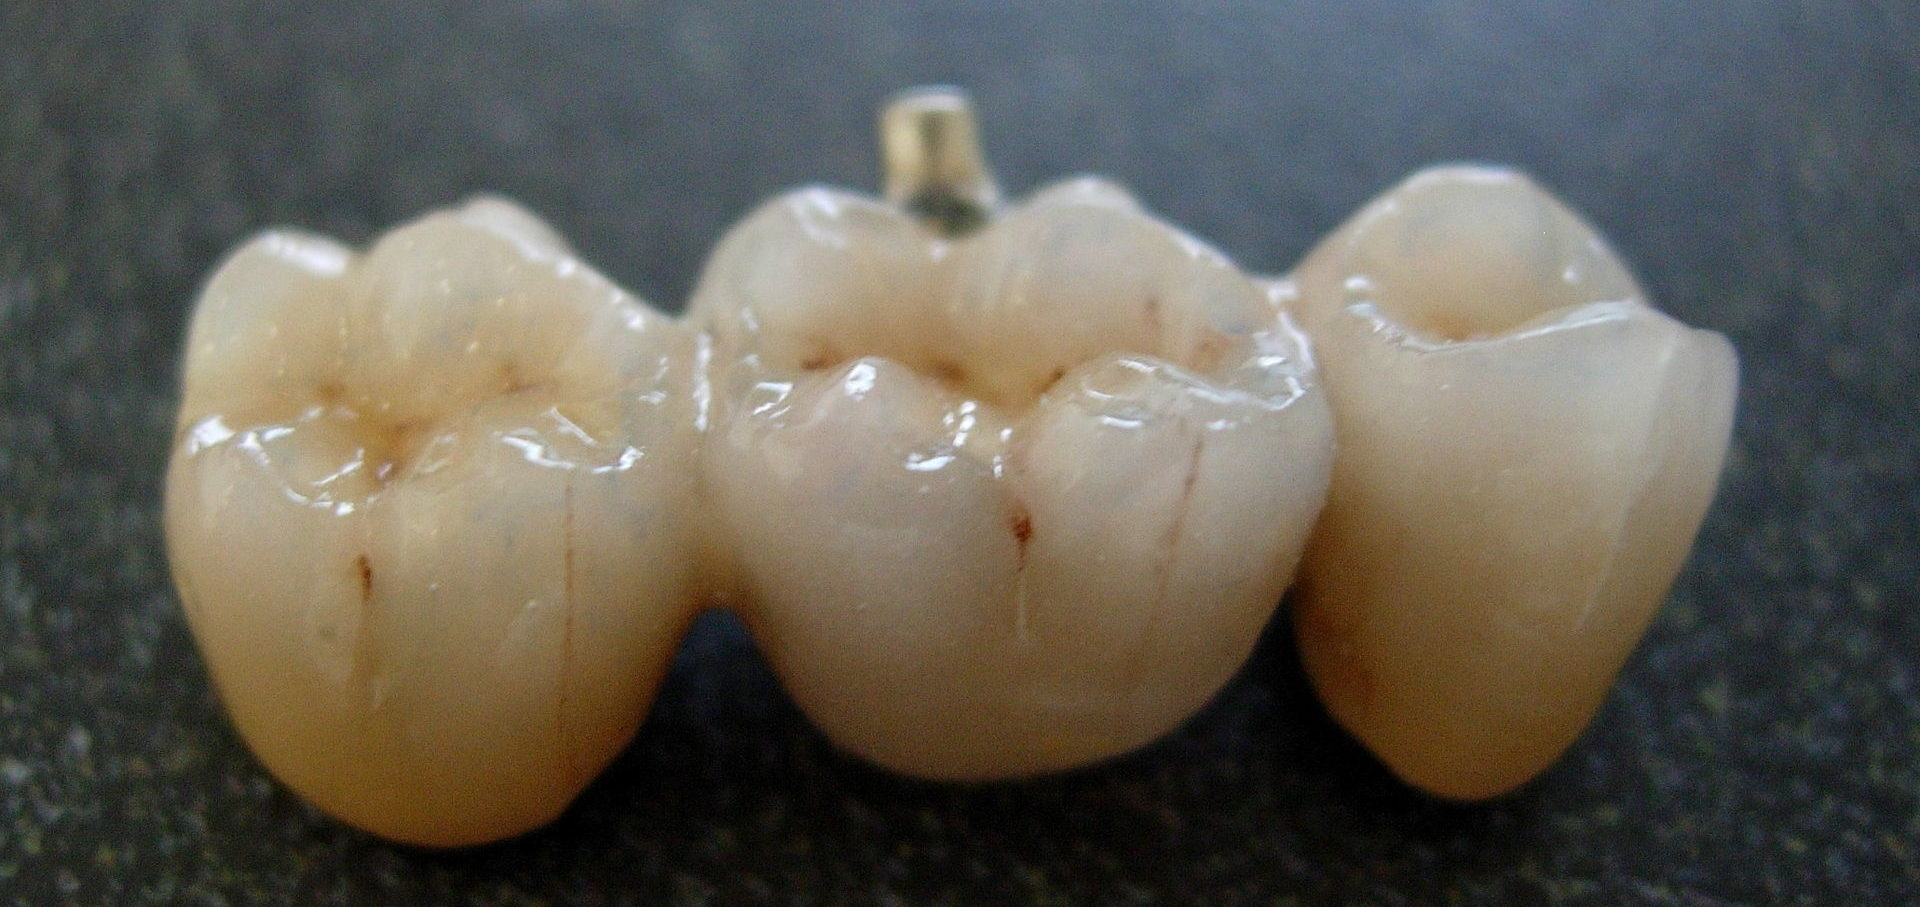 Muokattu lähteestä: https://en.wikipedia.org/wiki/Bridge_(dentistry)#/media/File:Bridge_from_dental_porcelain.jpg